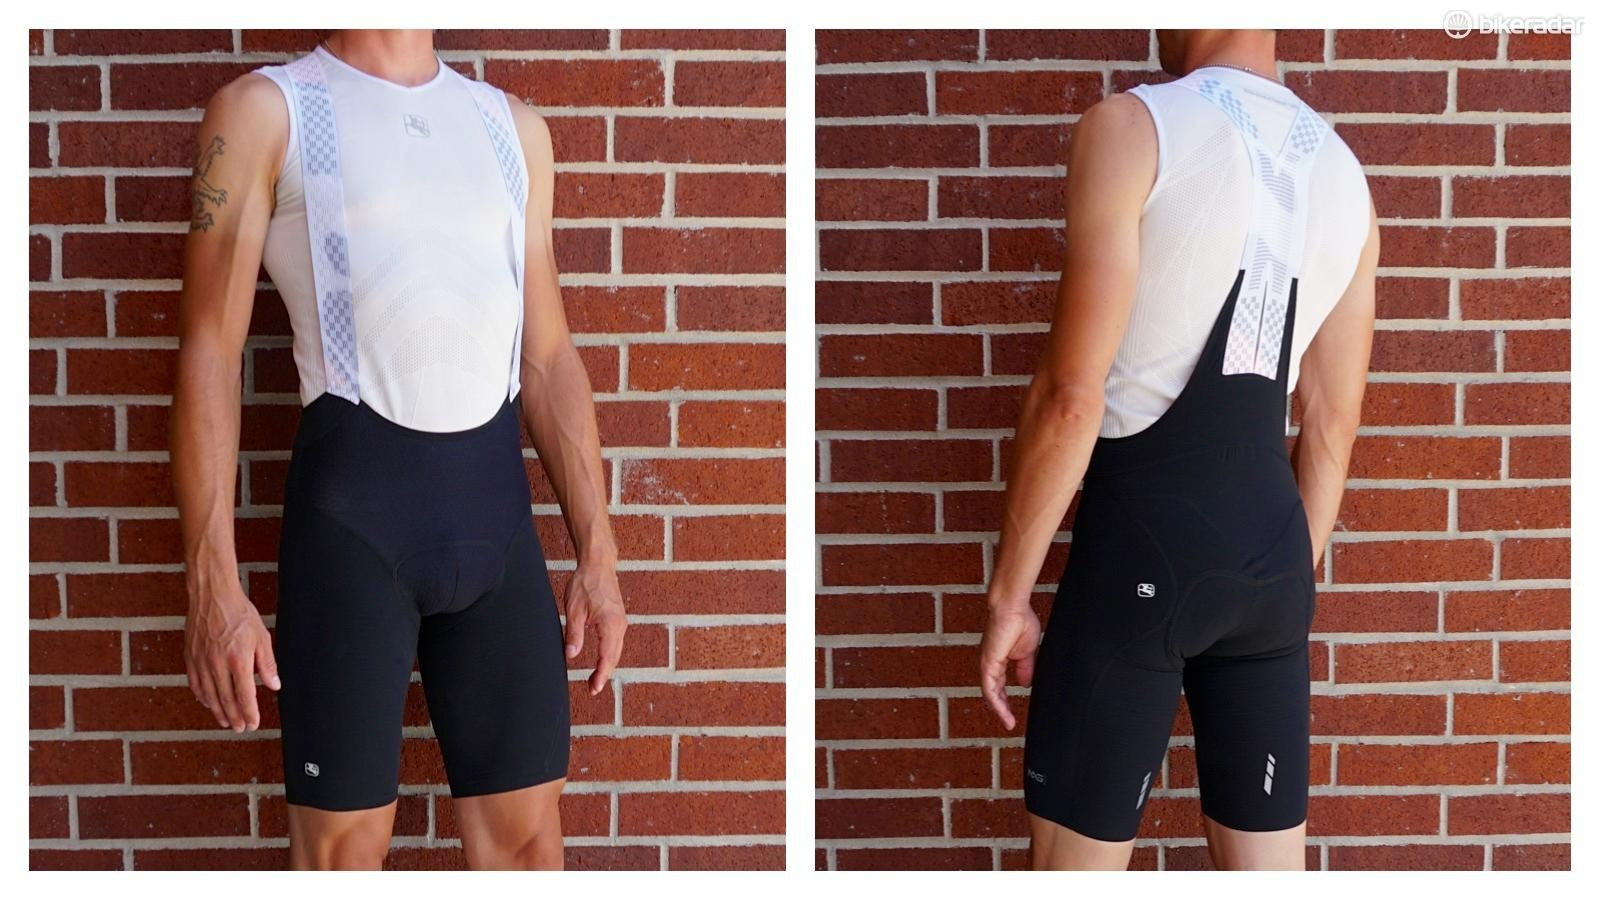 a0280edde3f4 Giordana NX-G bibs are industry-leading in every way